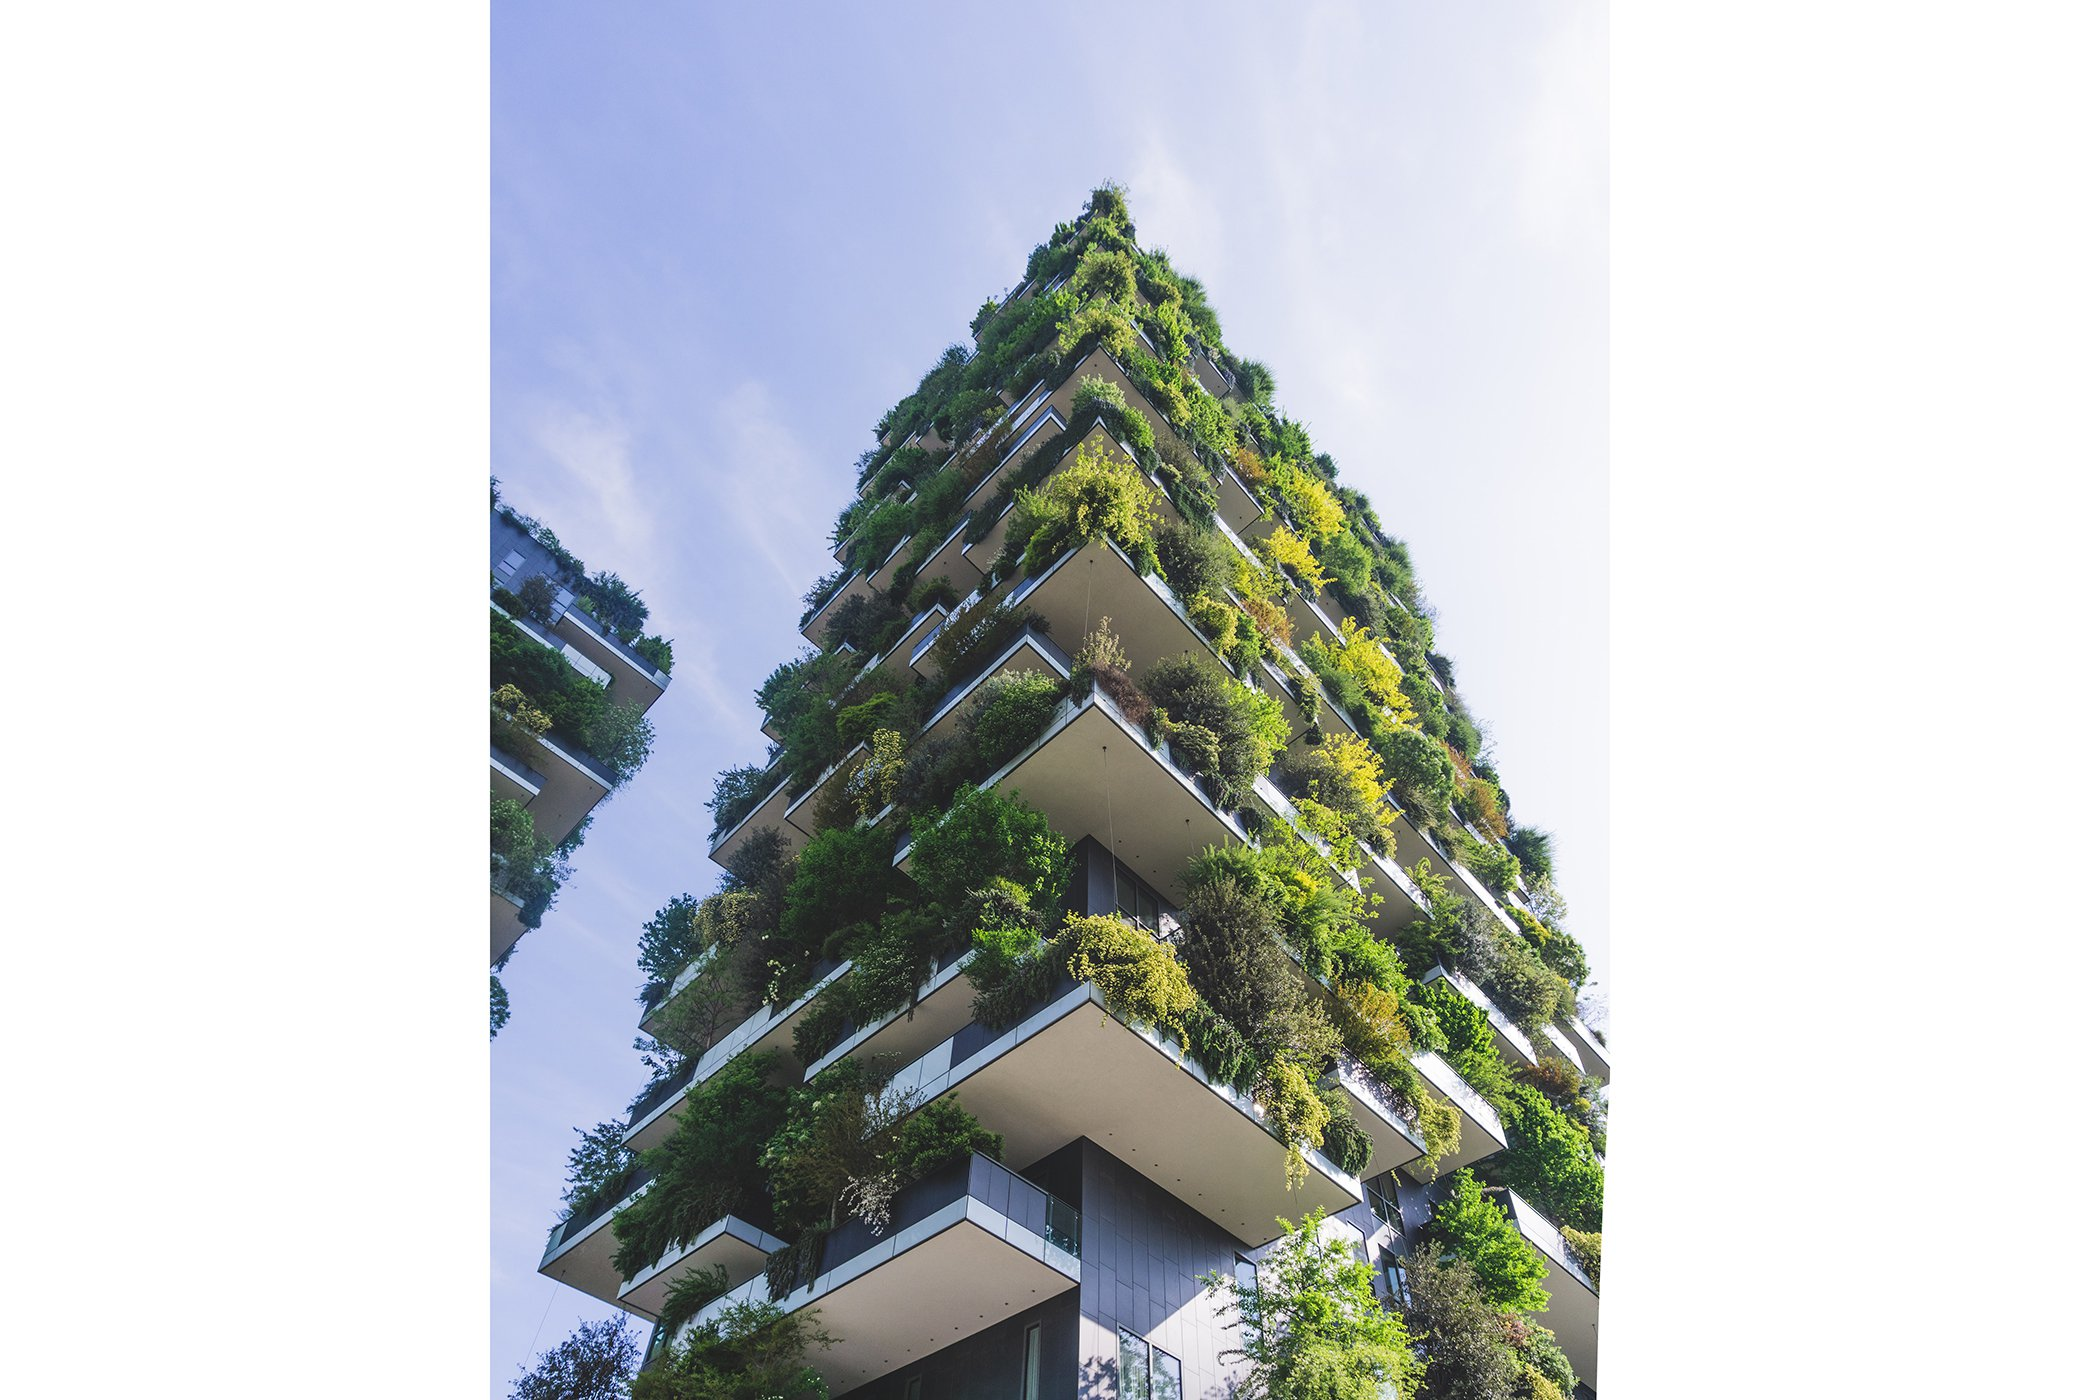 Sustainable-Urban-Development-Bosco-Verticale.jpg